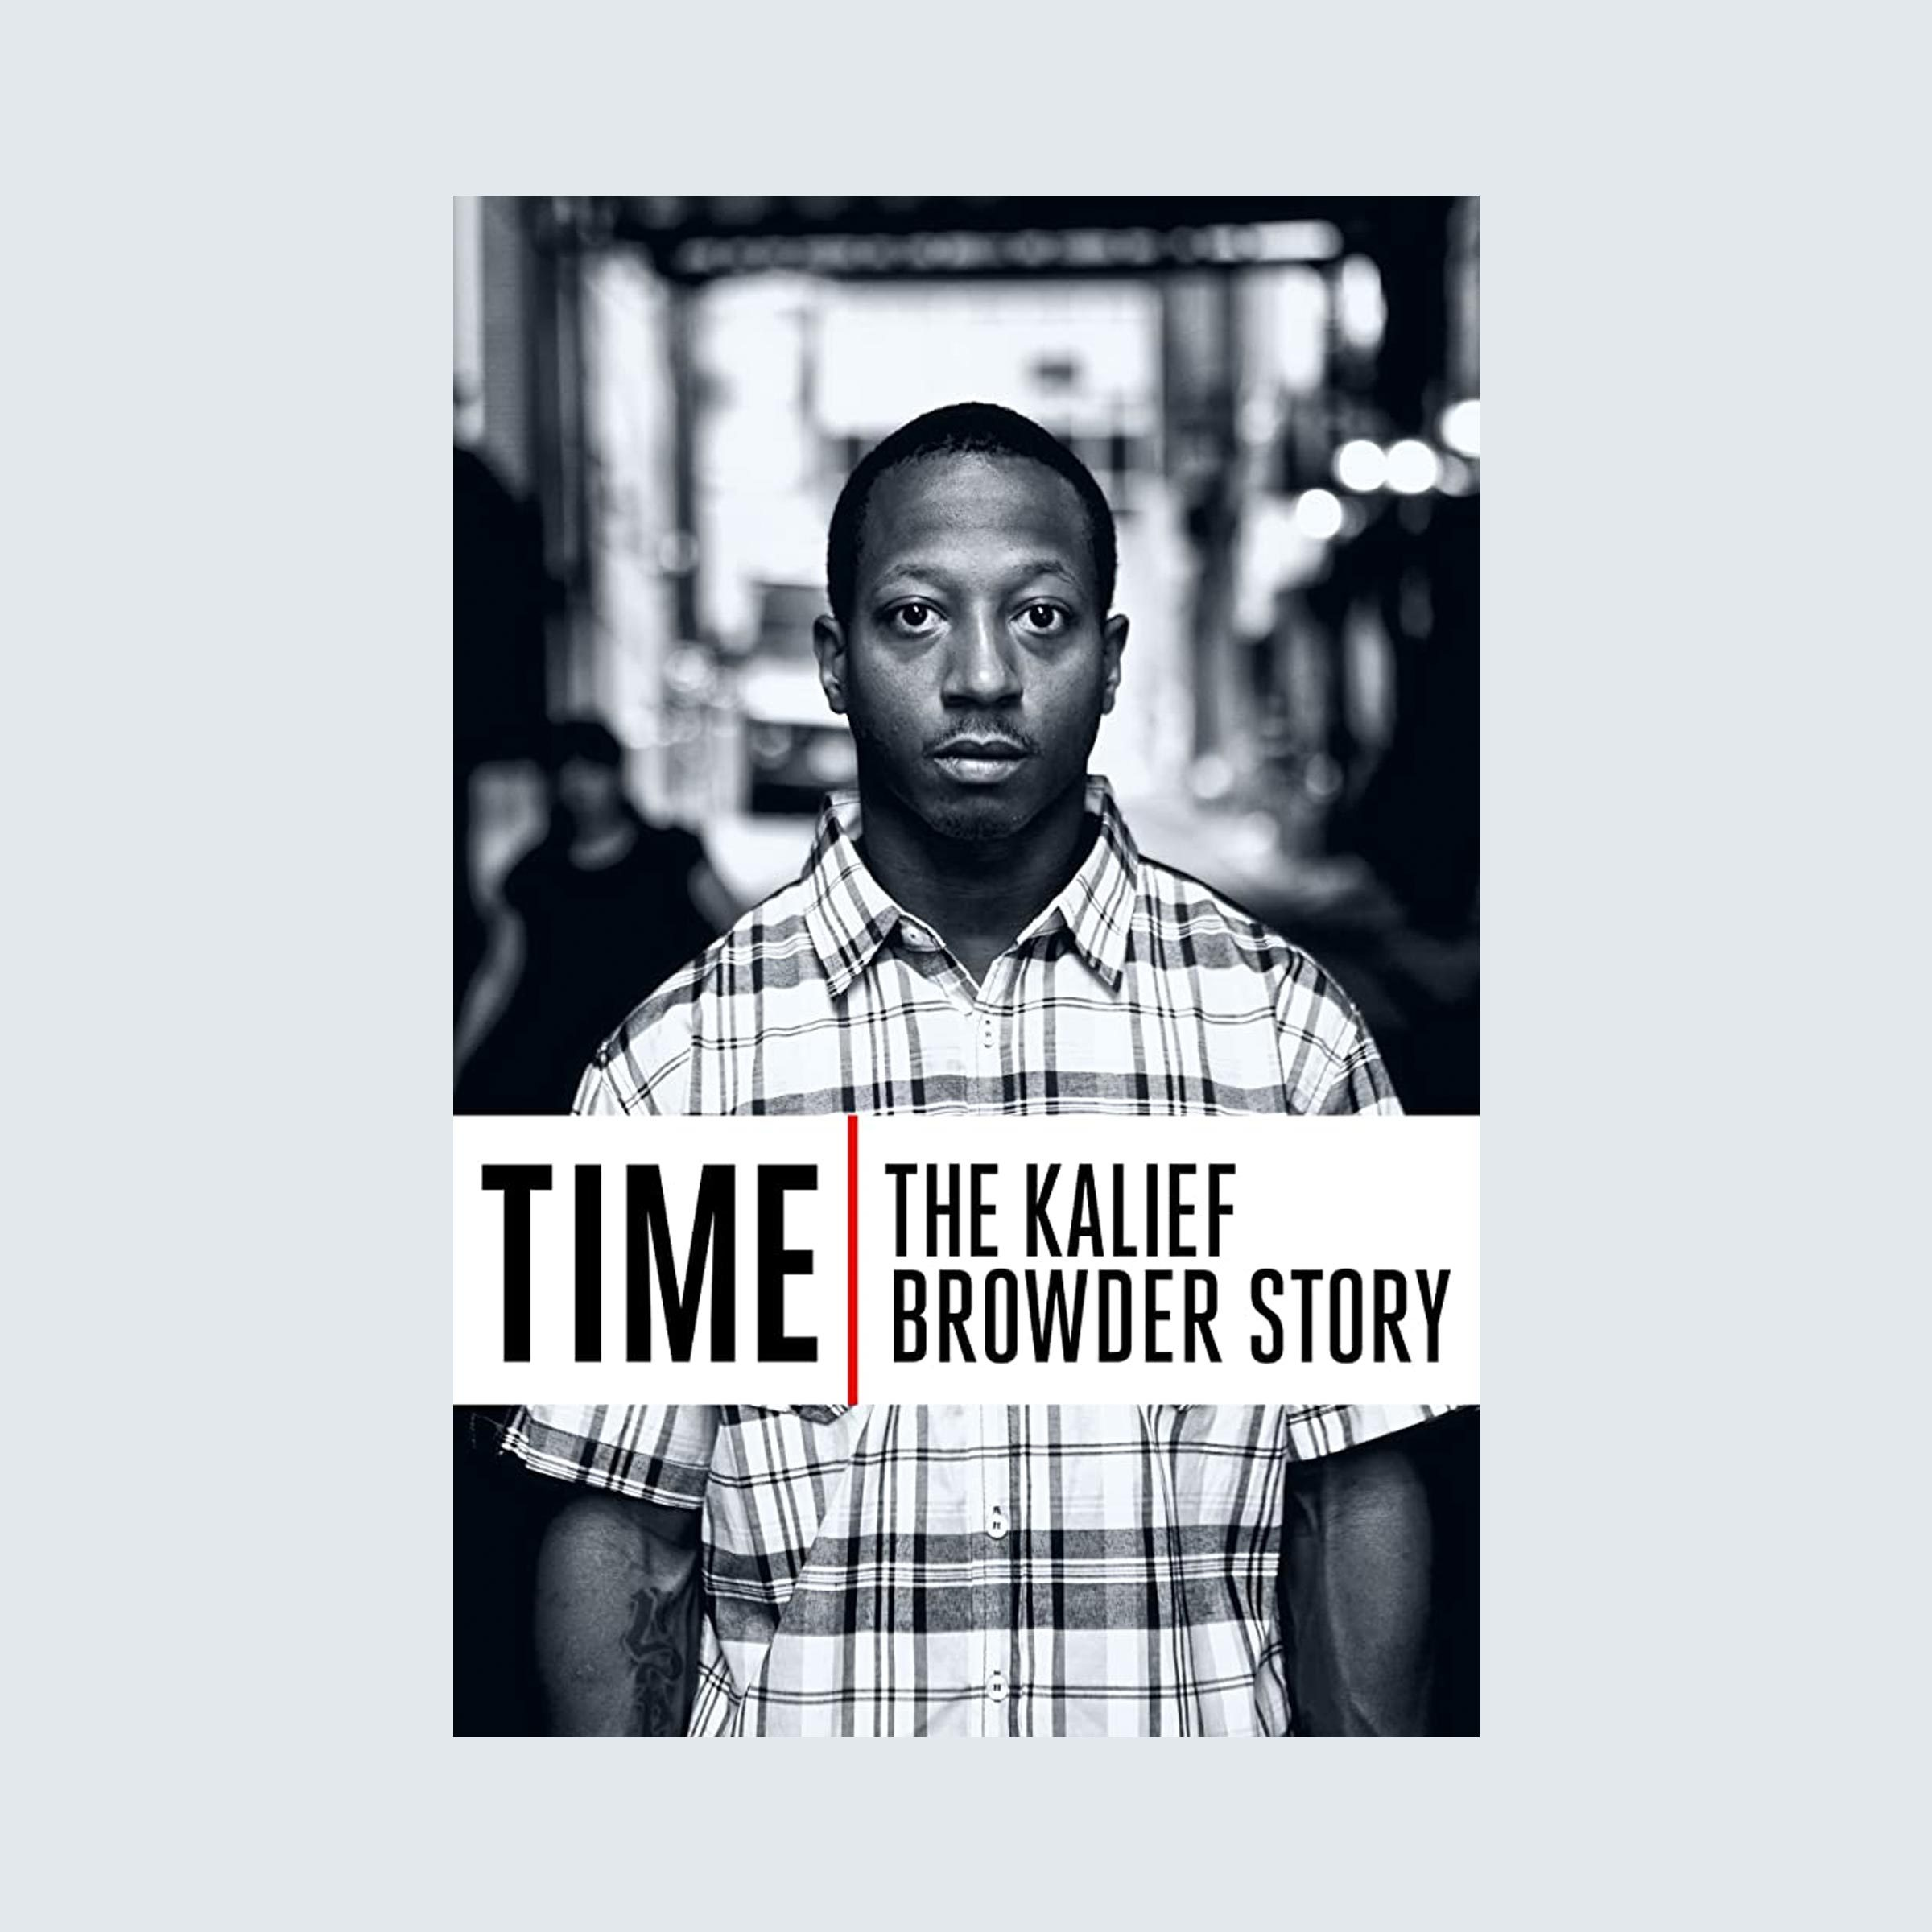 The Kalief Browder Story